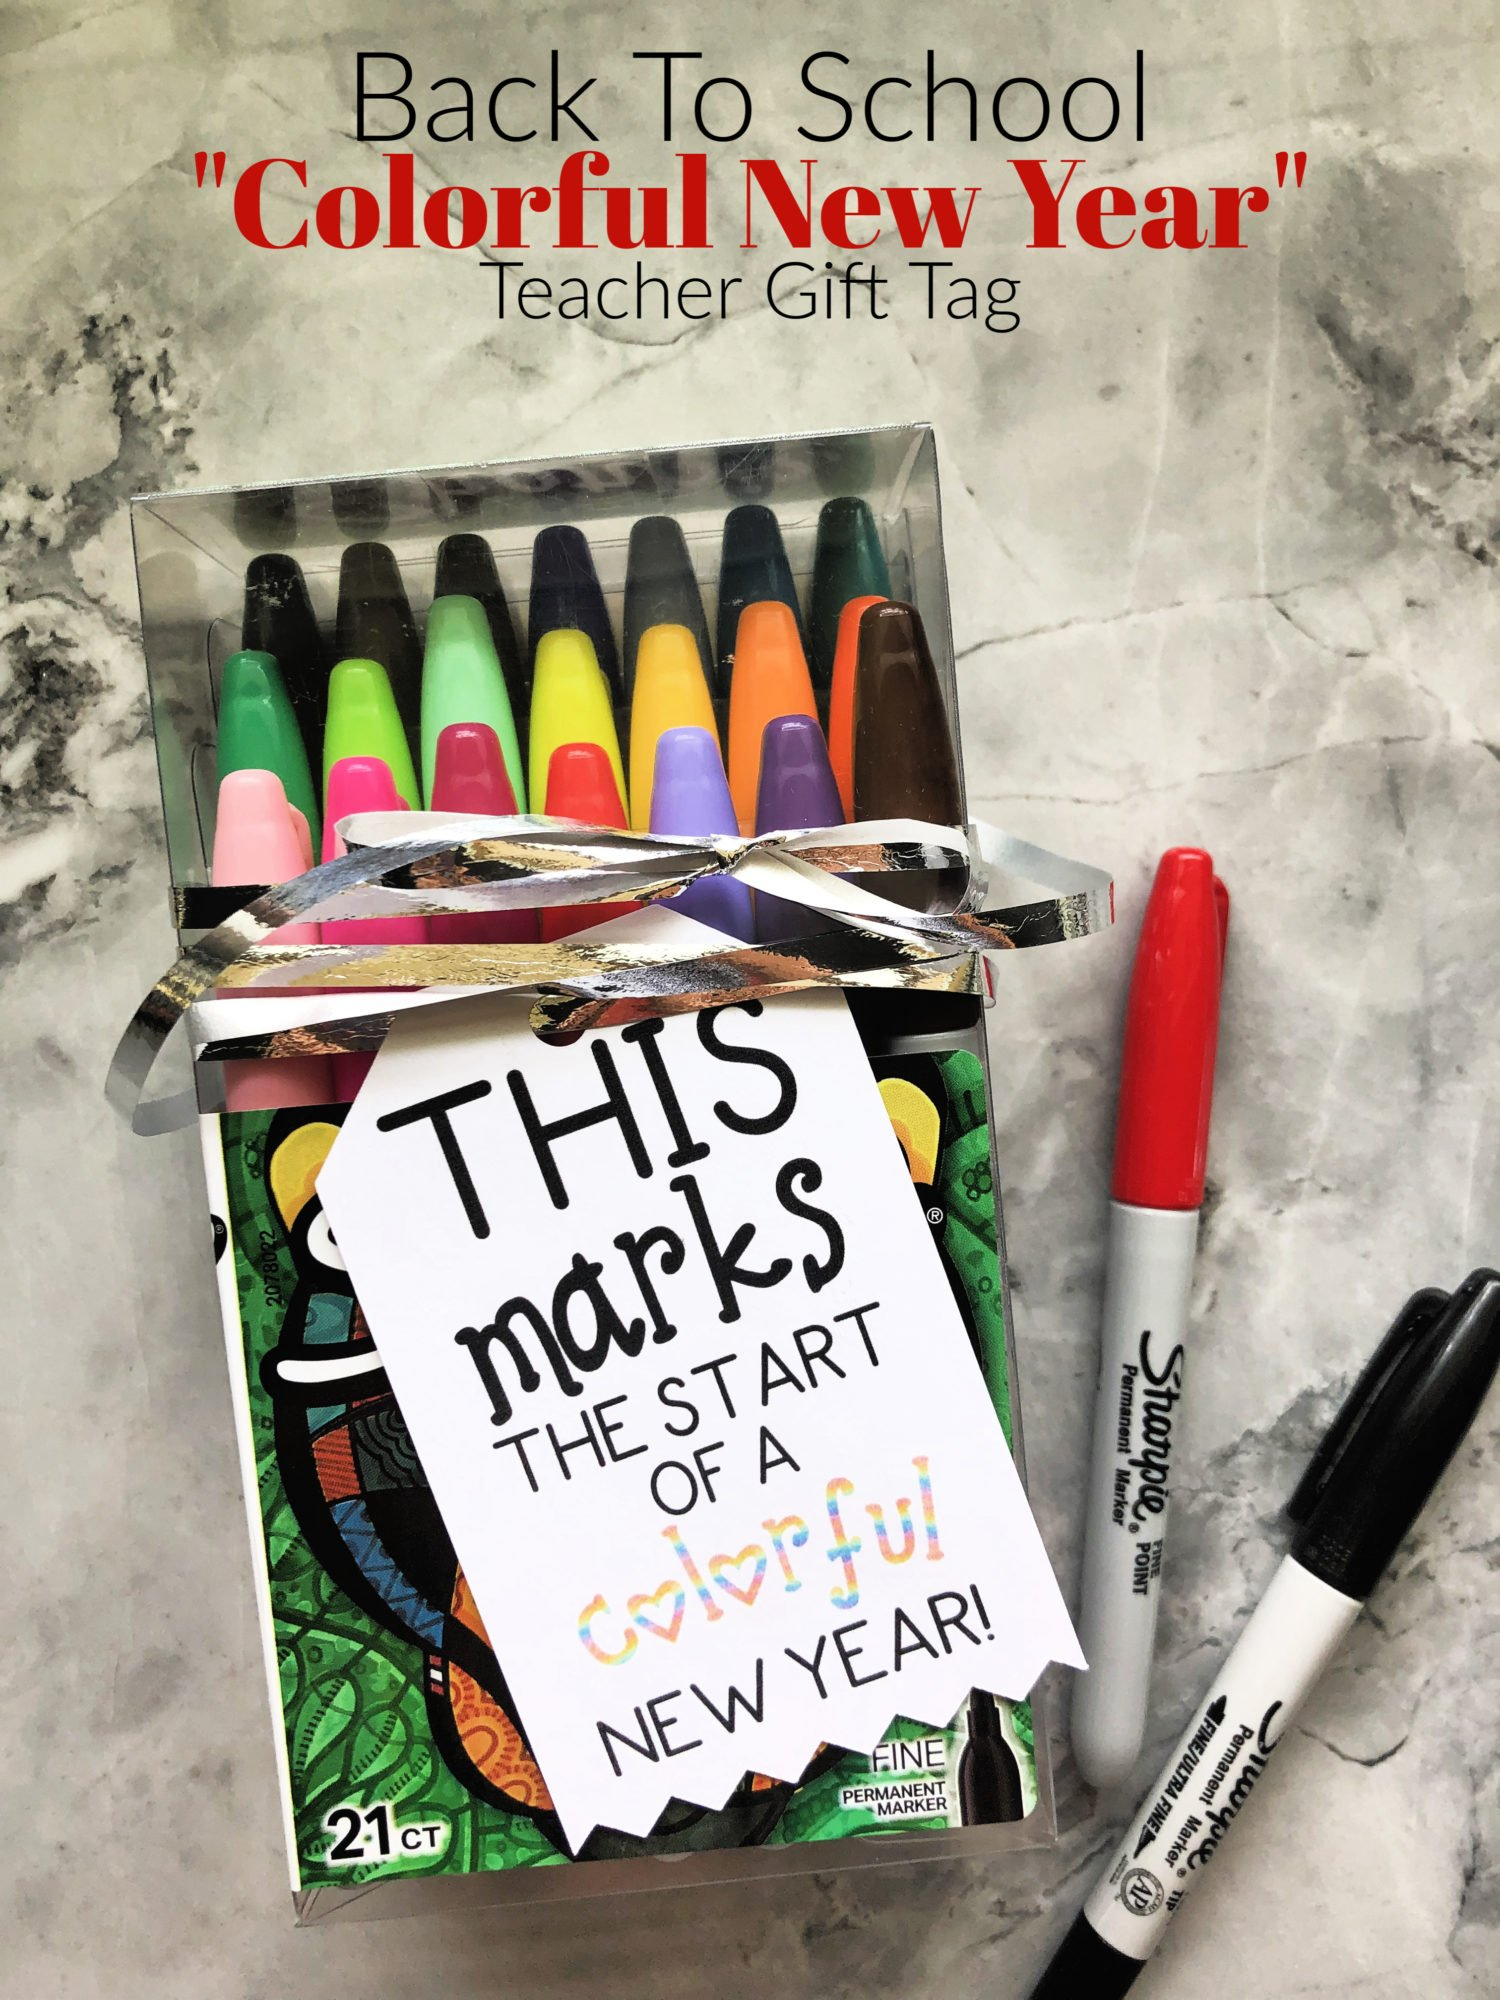 Back To School _Colorful New Year_ Gift Tag